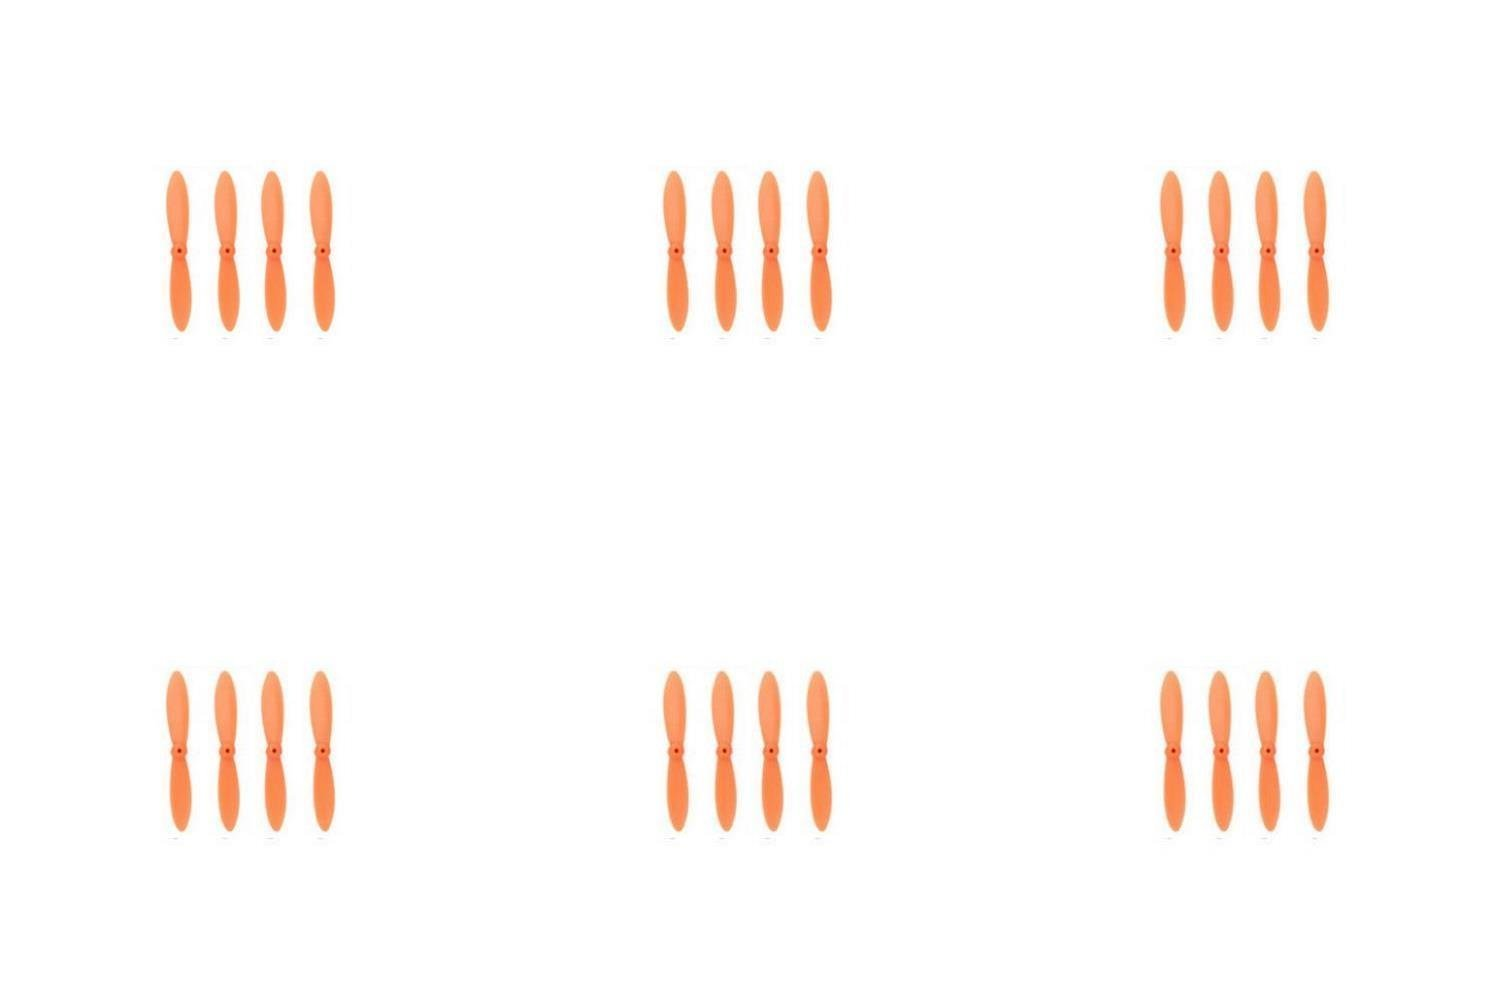 disfrutando de sus compras 6 x x x Quantity of Walkera CX-10A All Orange Nano Quadcopter Propeller blade Set 32mm Propellers Blades Props Quad Drone parts - FAST FROM Orlando, Florida USA  calidad garantizada